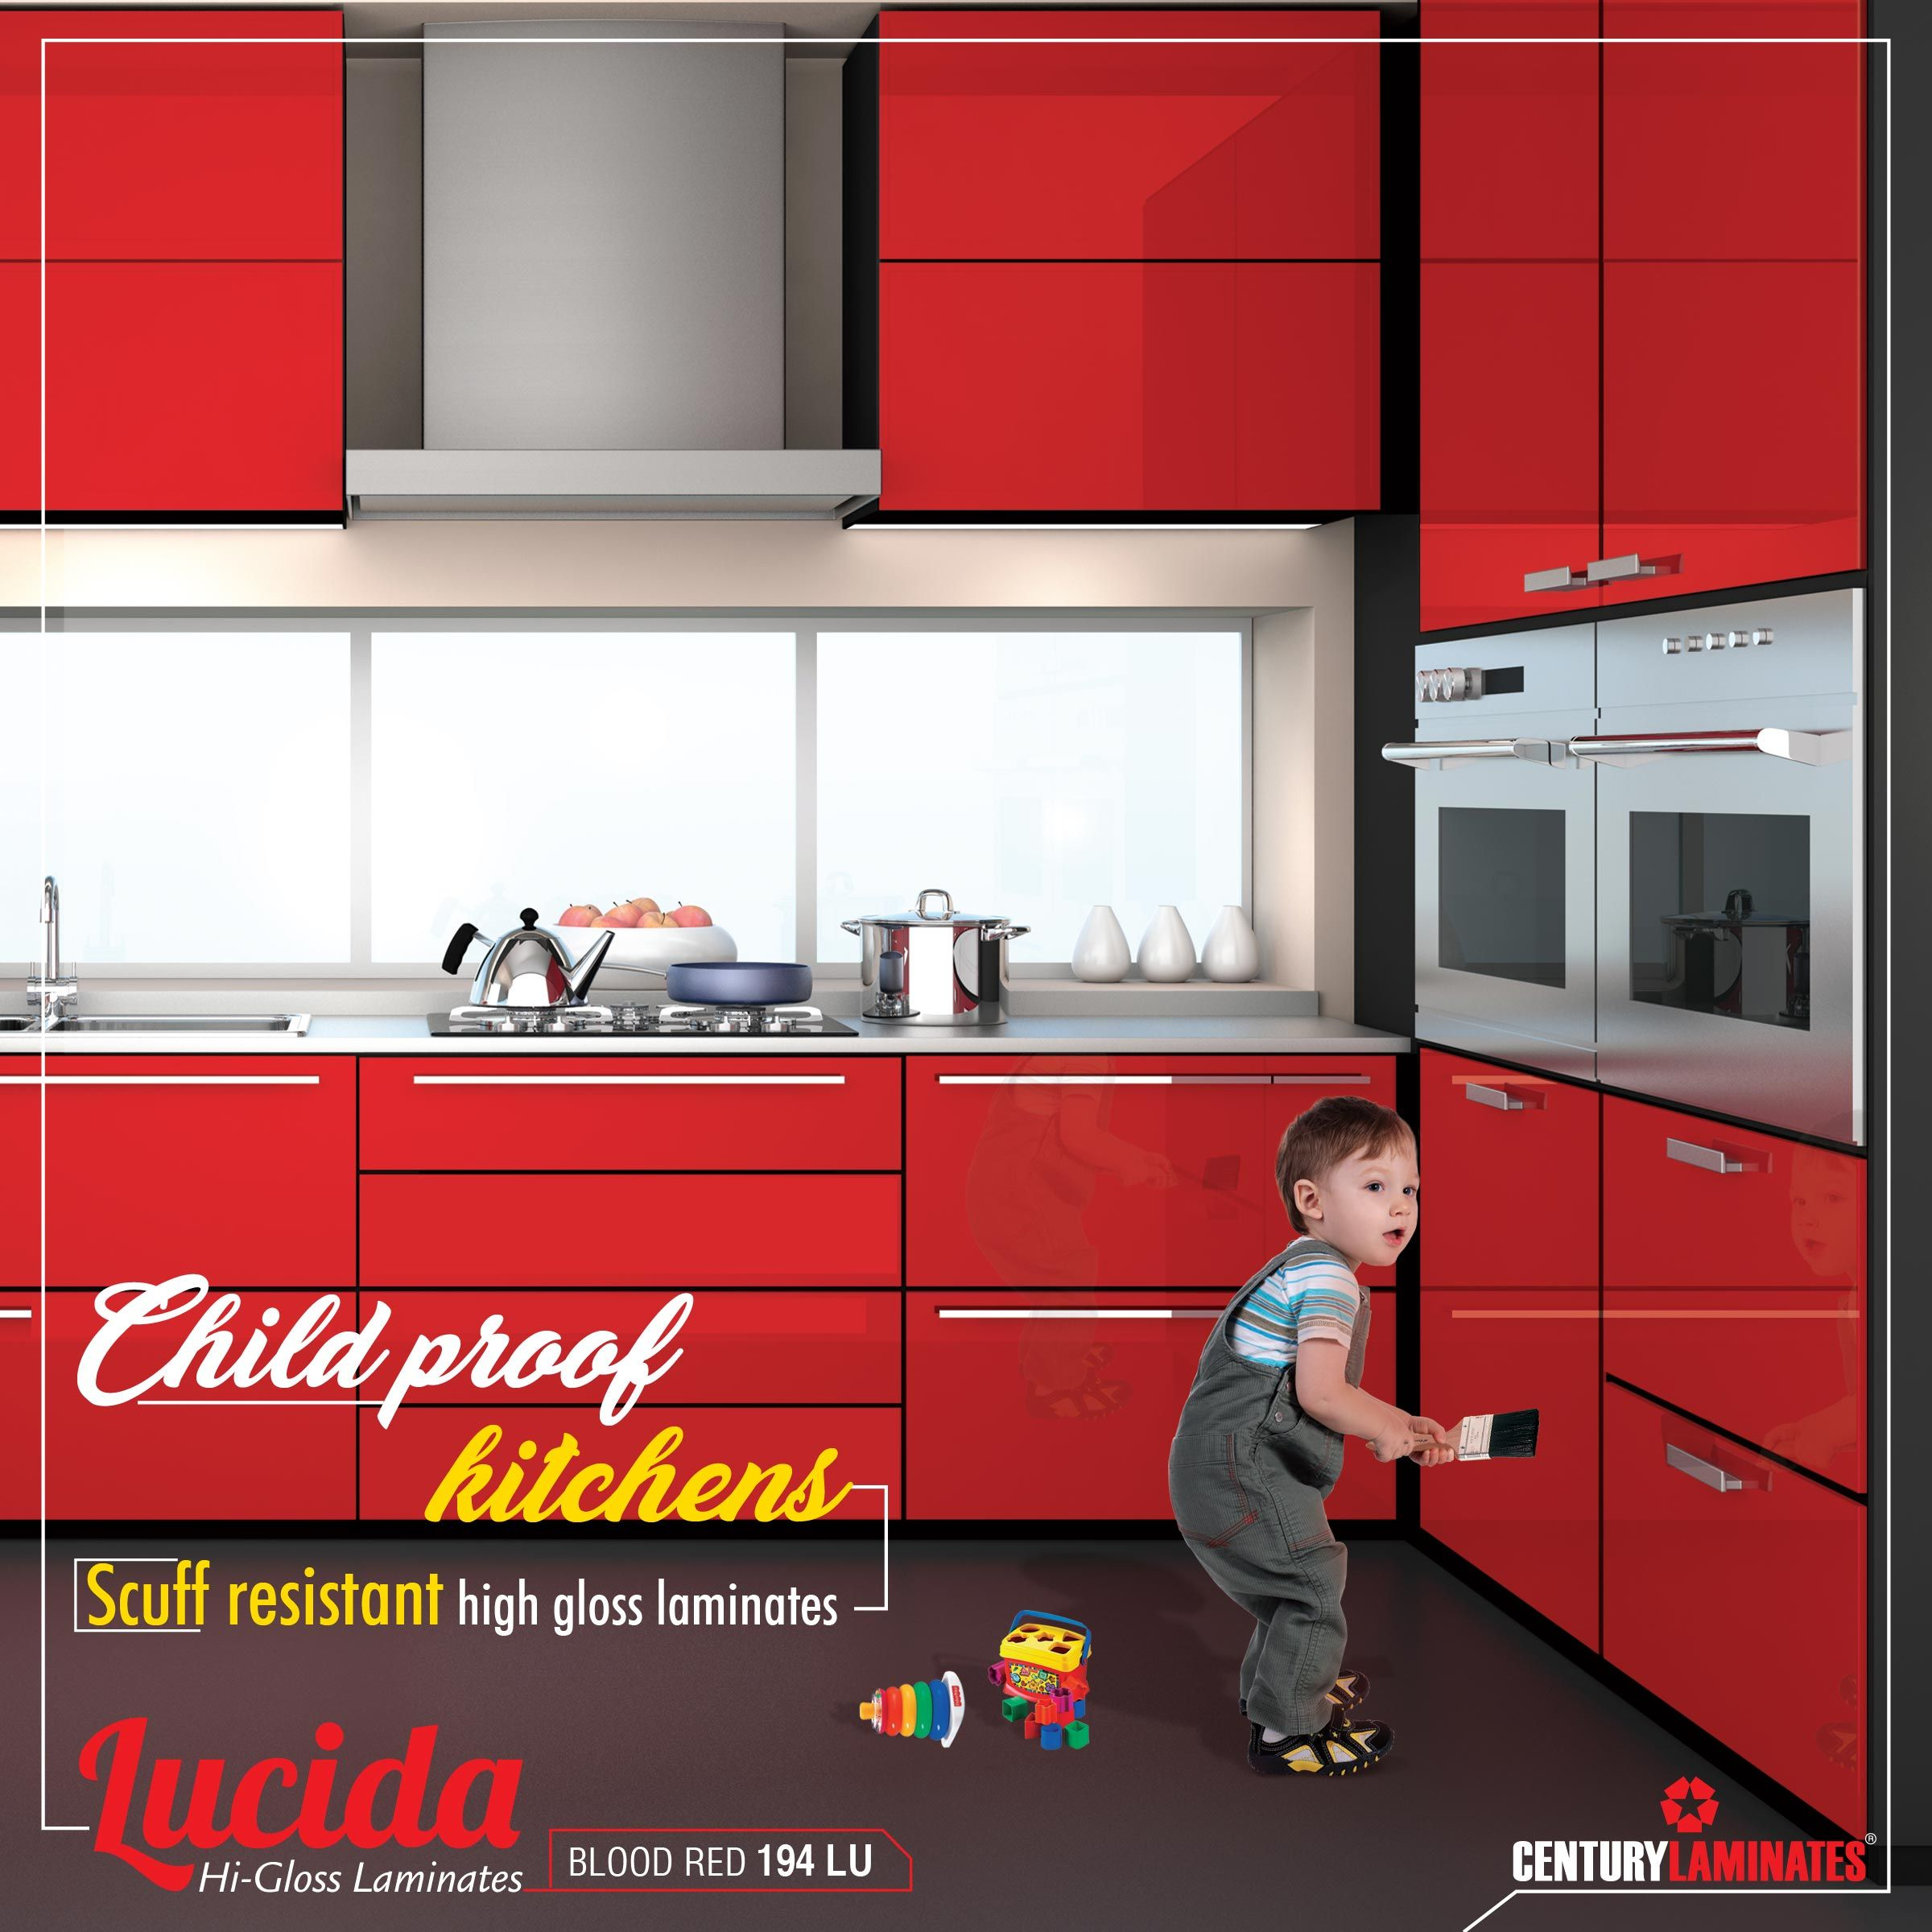 Lucida High Gloss Laminates Is Scuff Resistant Best Choice For Your Kitchens Centurylaminates Lucida Click Here Http Bit Laminates High Gloss Century